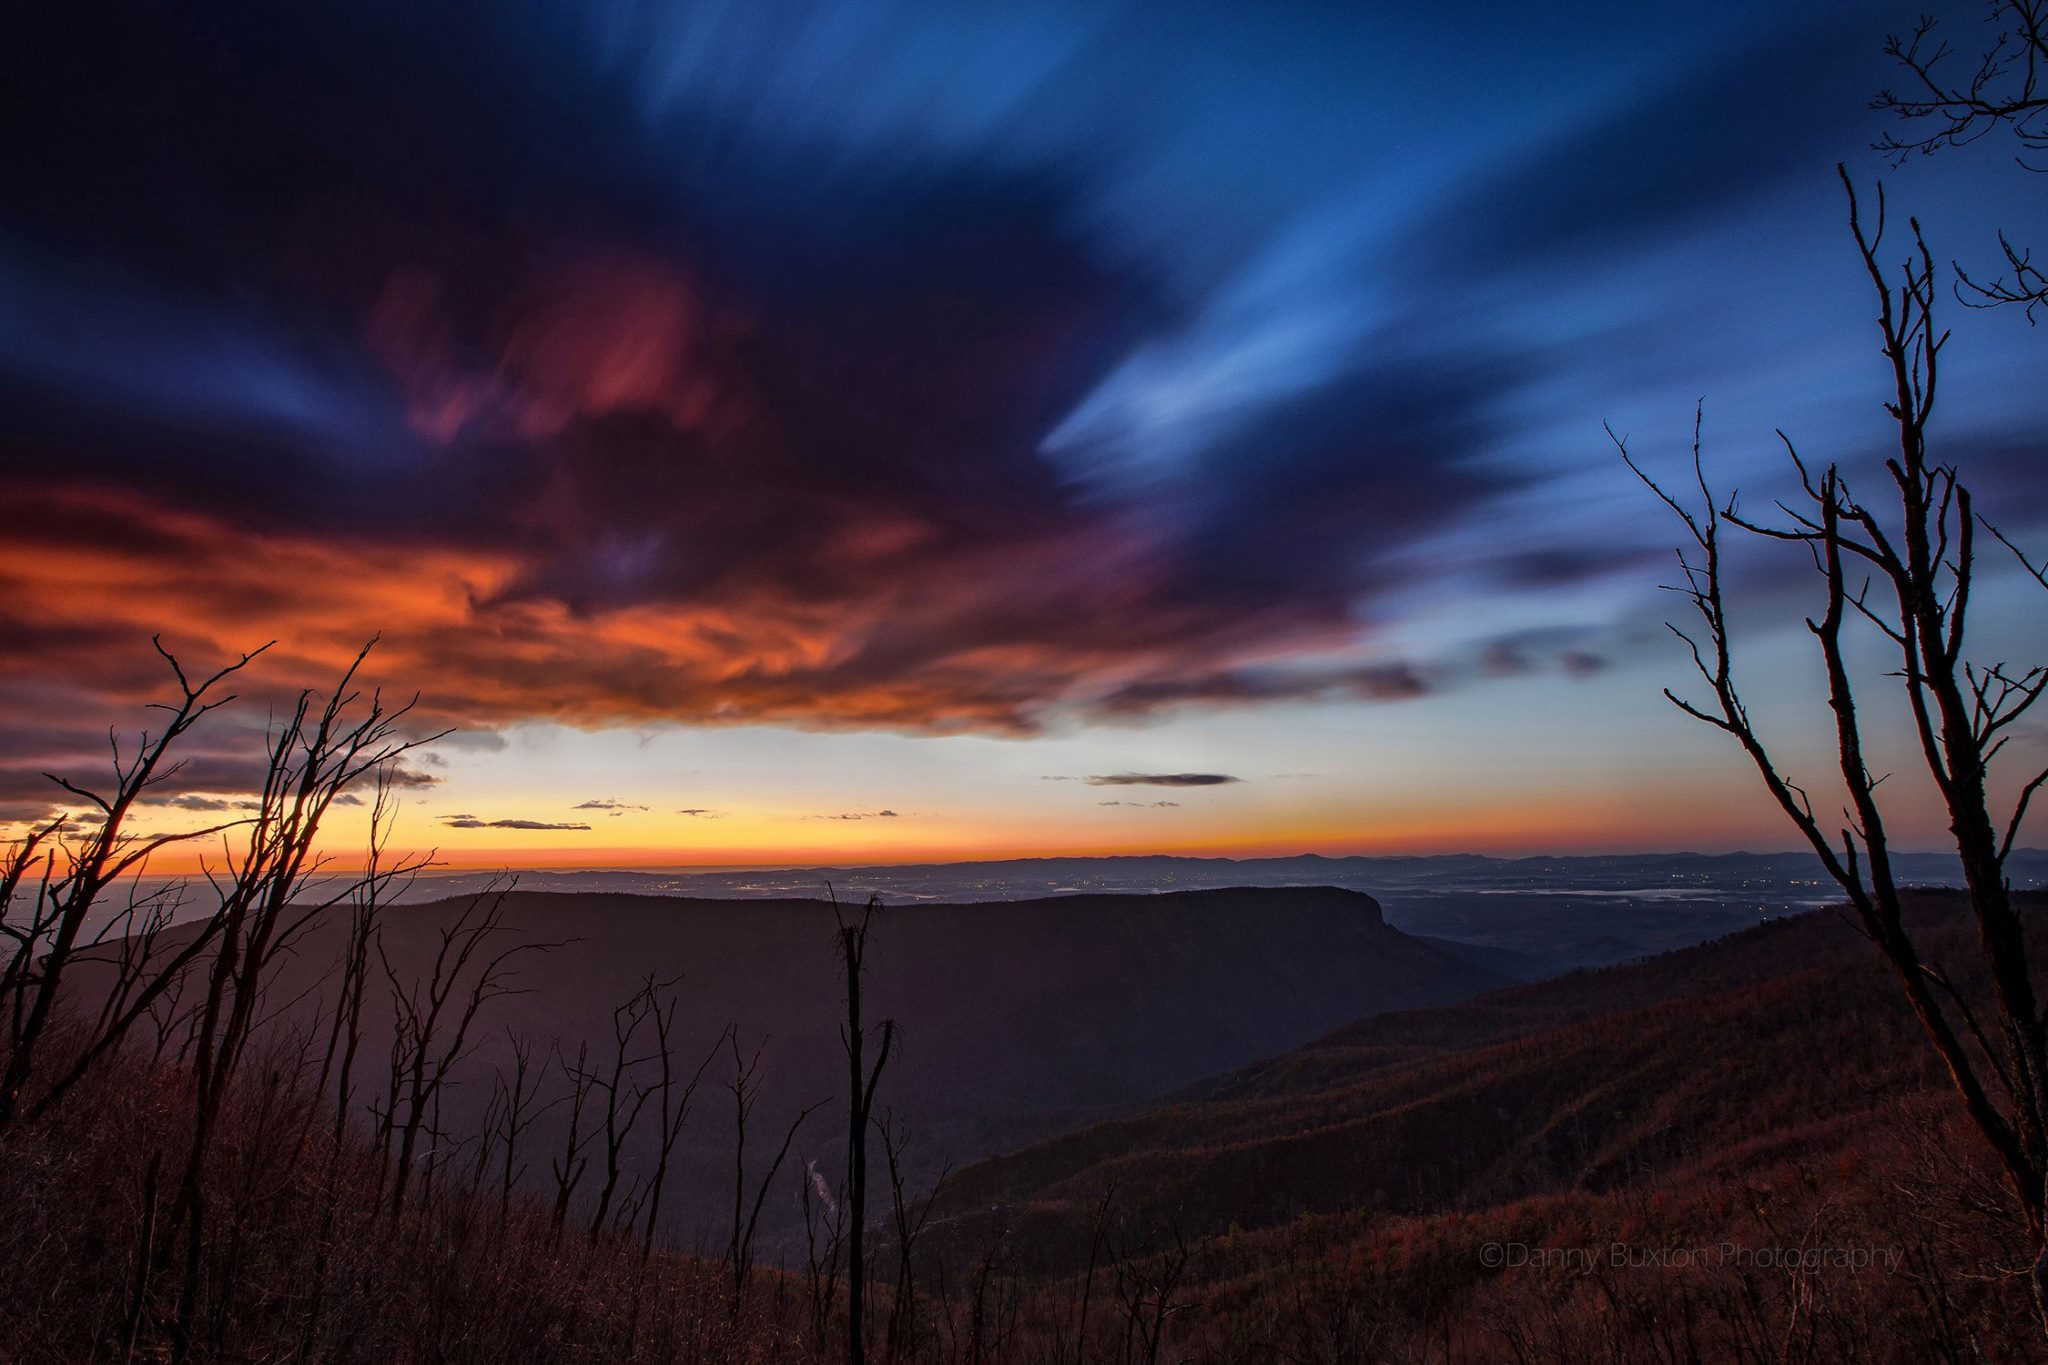 Daybreak from Dogback Mountain, Linville Gorge.  (Photo: Danny Buxton)